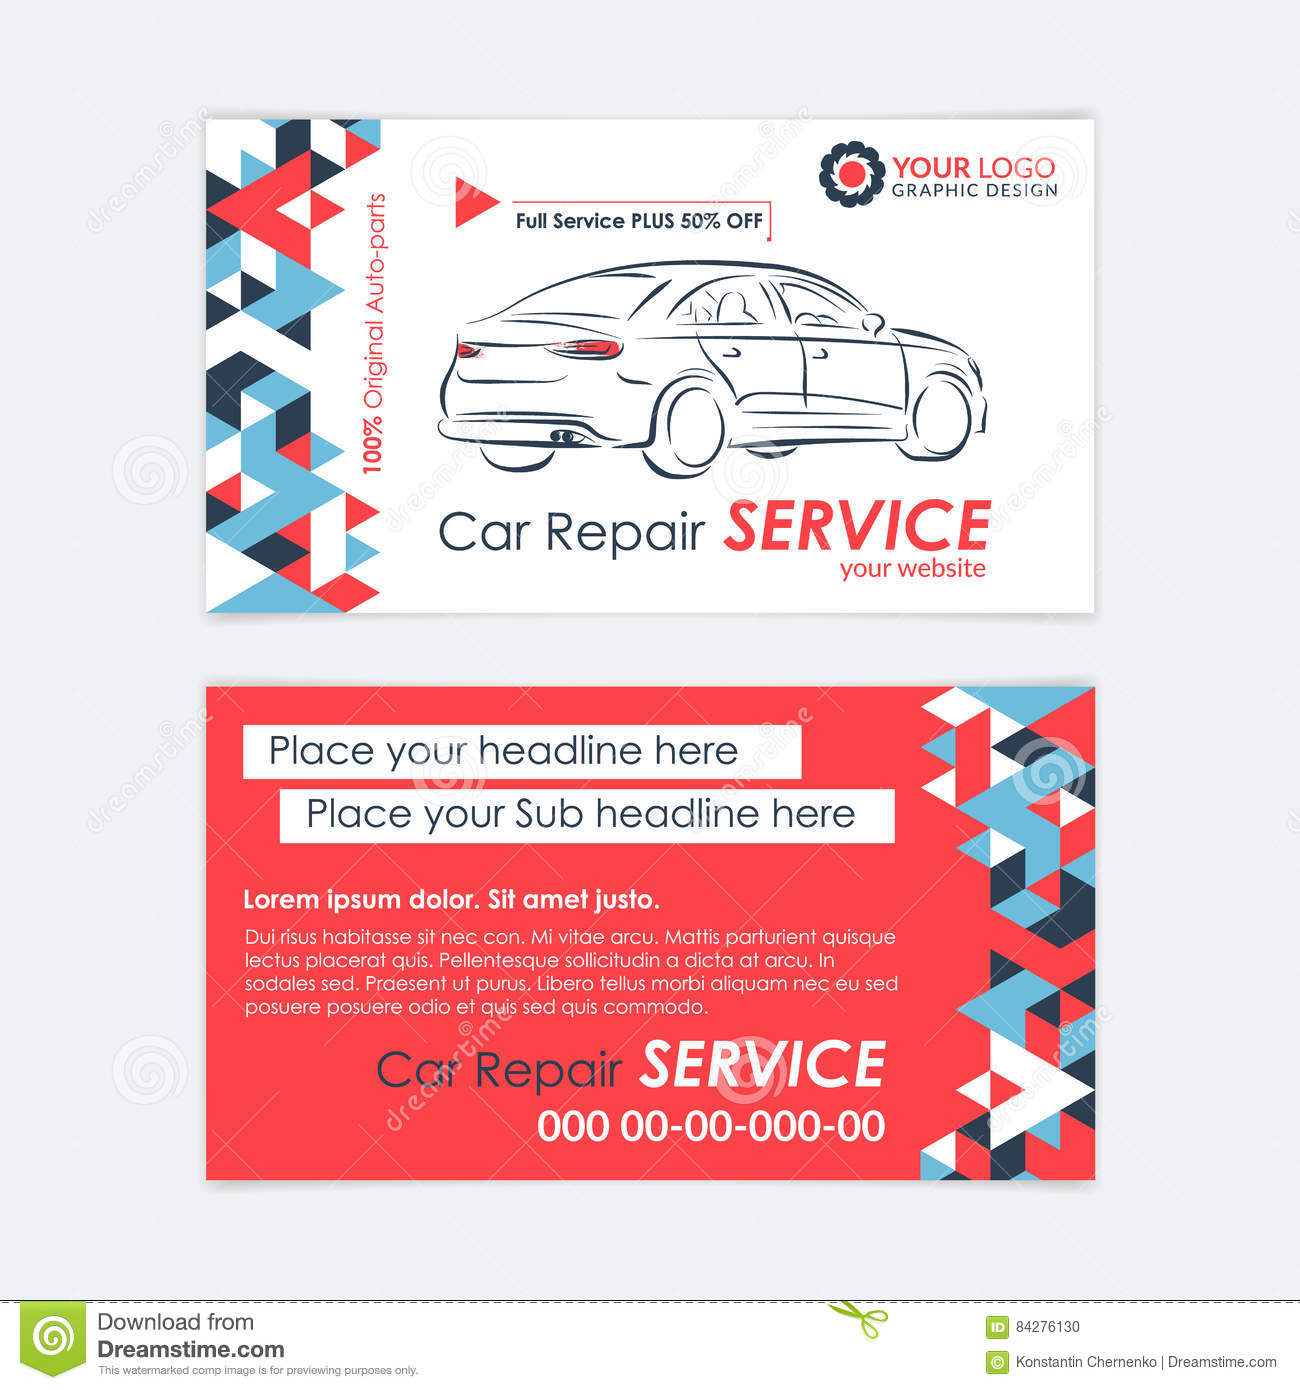 Automotive service business card template car diagnostics and royalty free vector download automotive service business card template car diagnostics and transport repair accmission Choice Image